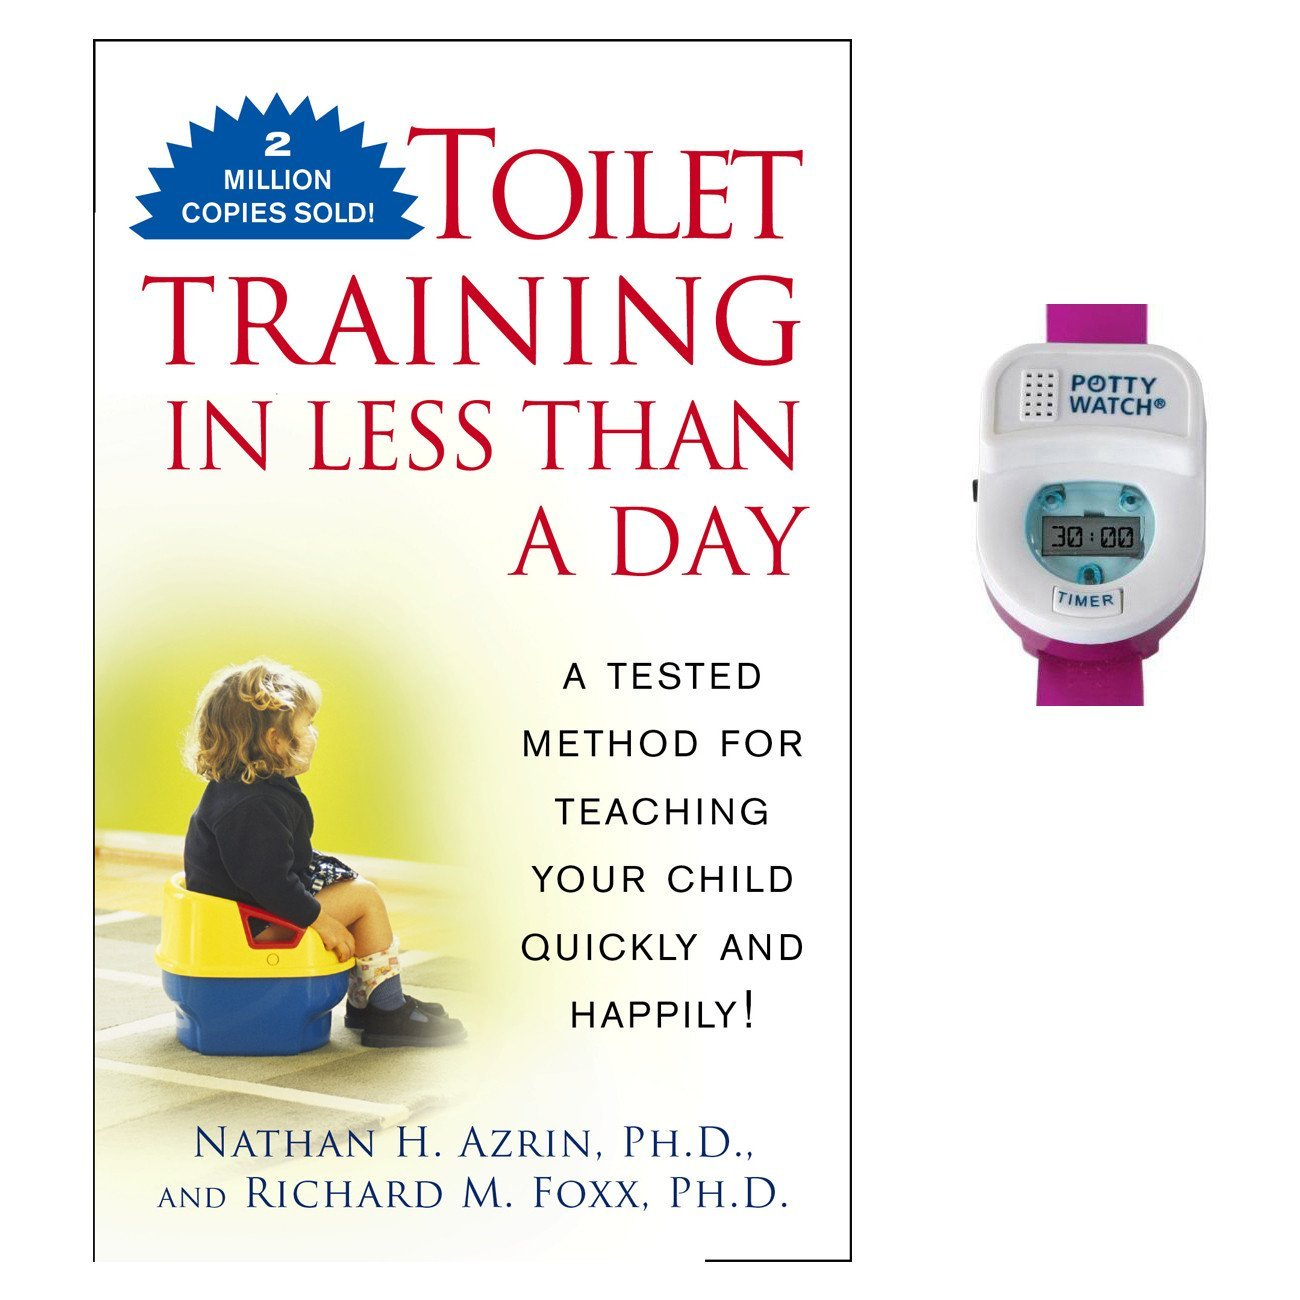 Toilet Training in Less Than A Day Guide Book with Potty Watch Trainer, Pink